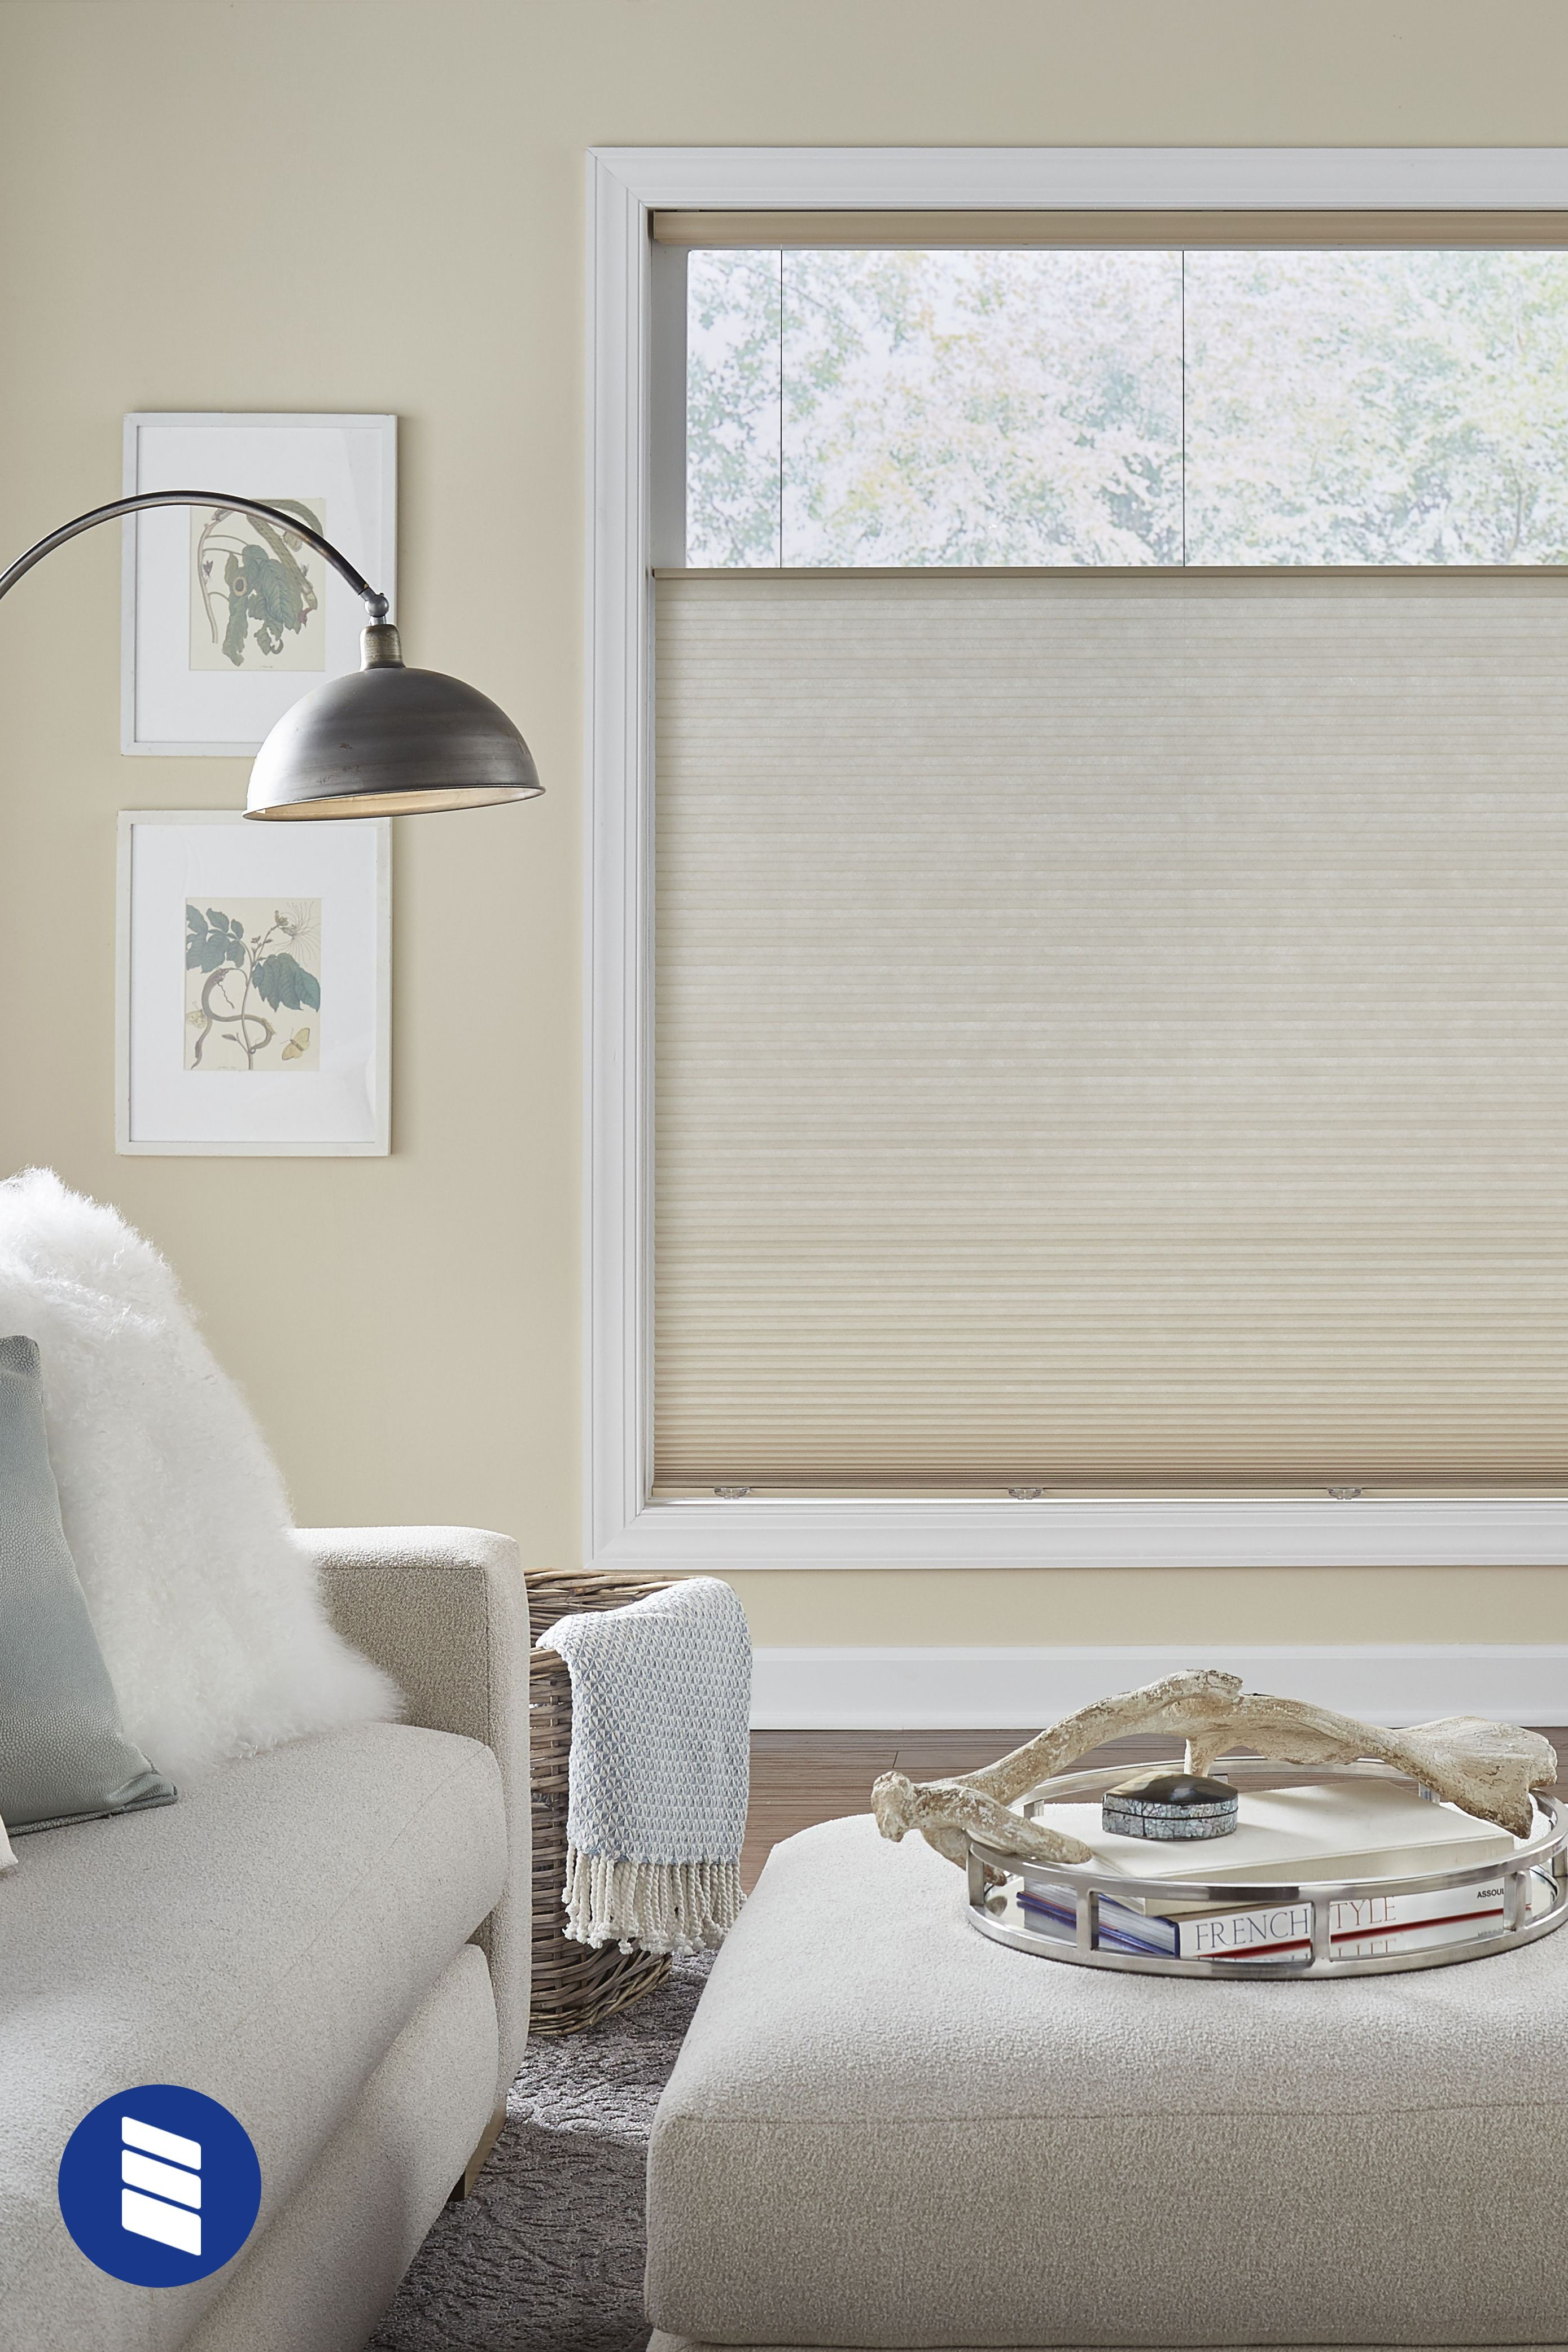 Premium Light Filtering Cellular Shades Cellular Shades Insulated Blinds Window Treatments Living Room